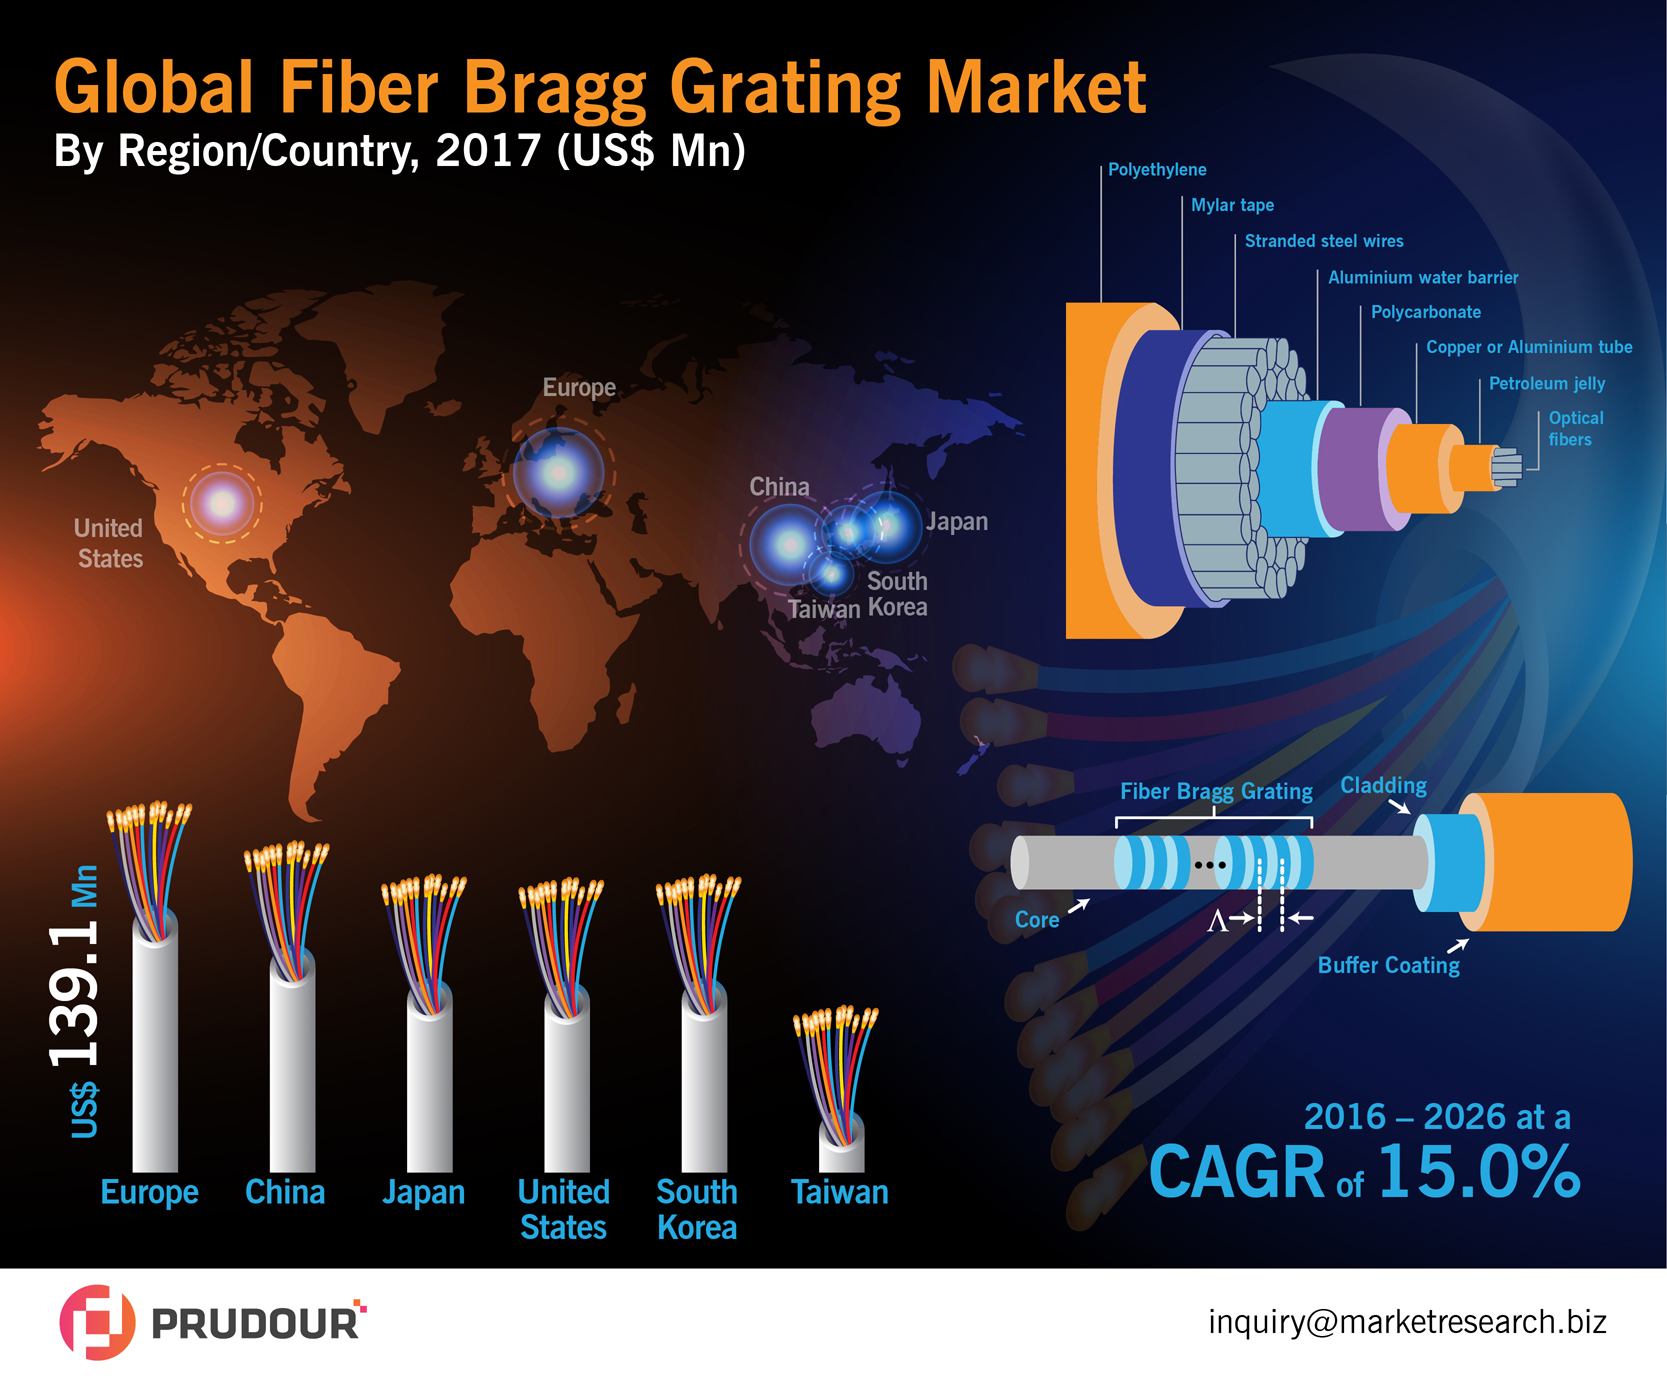 global-fiber-bragg-grating-market-infographic-plaza